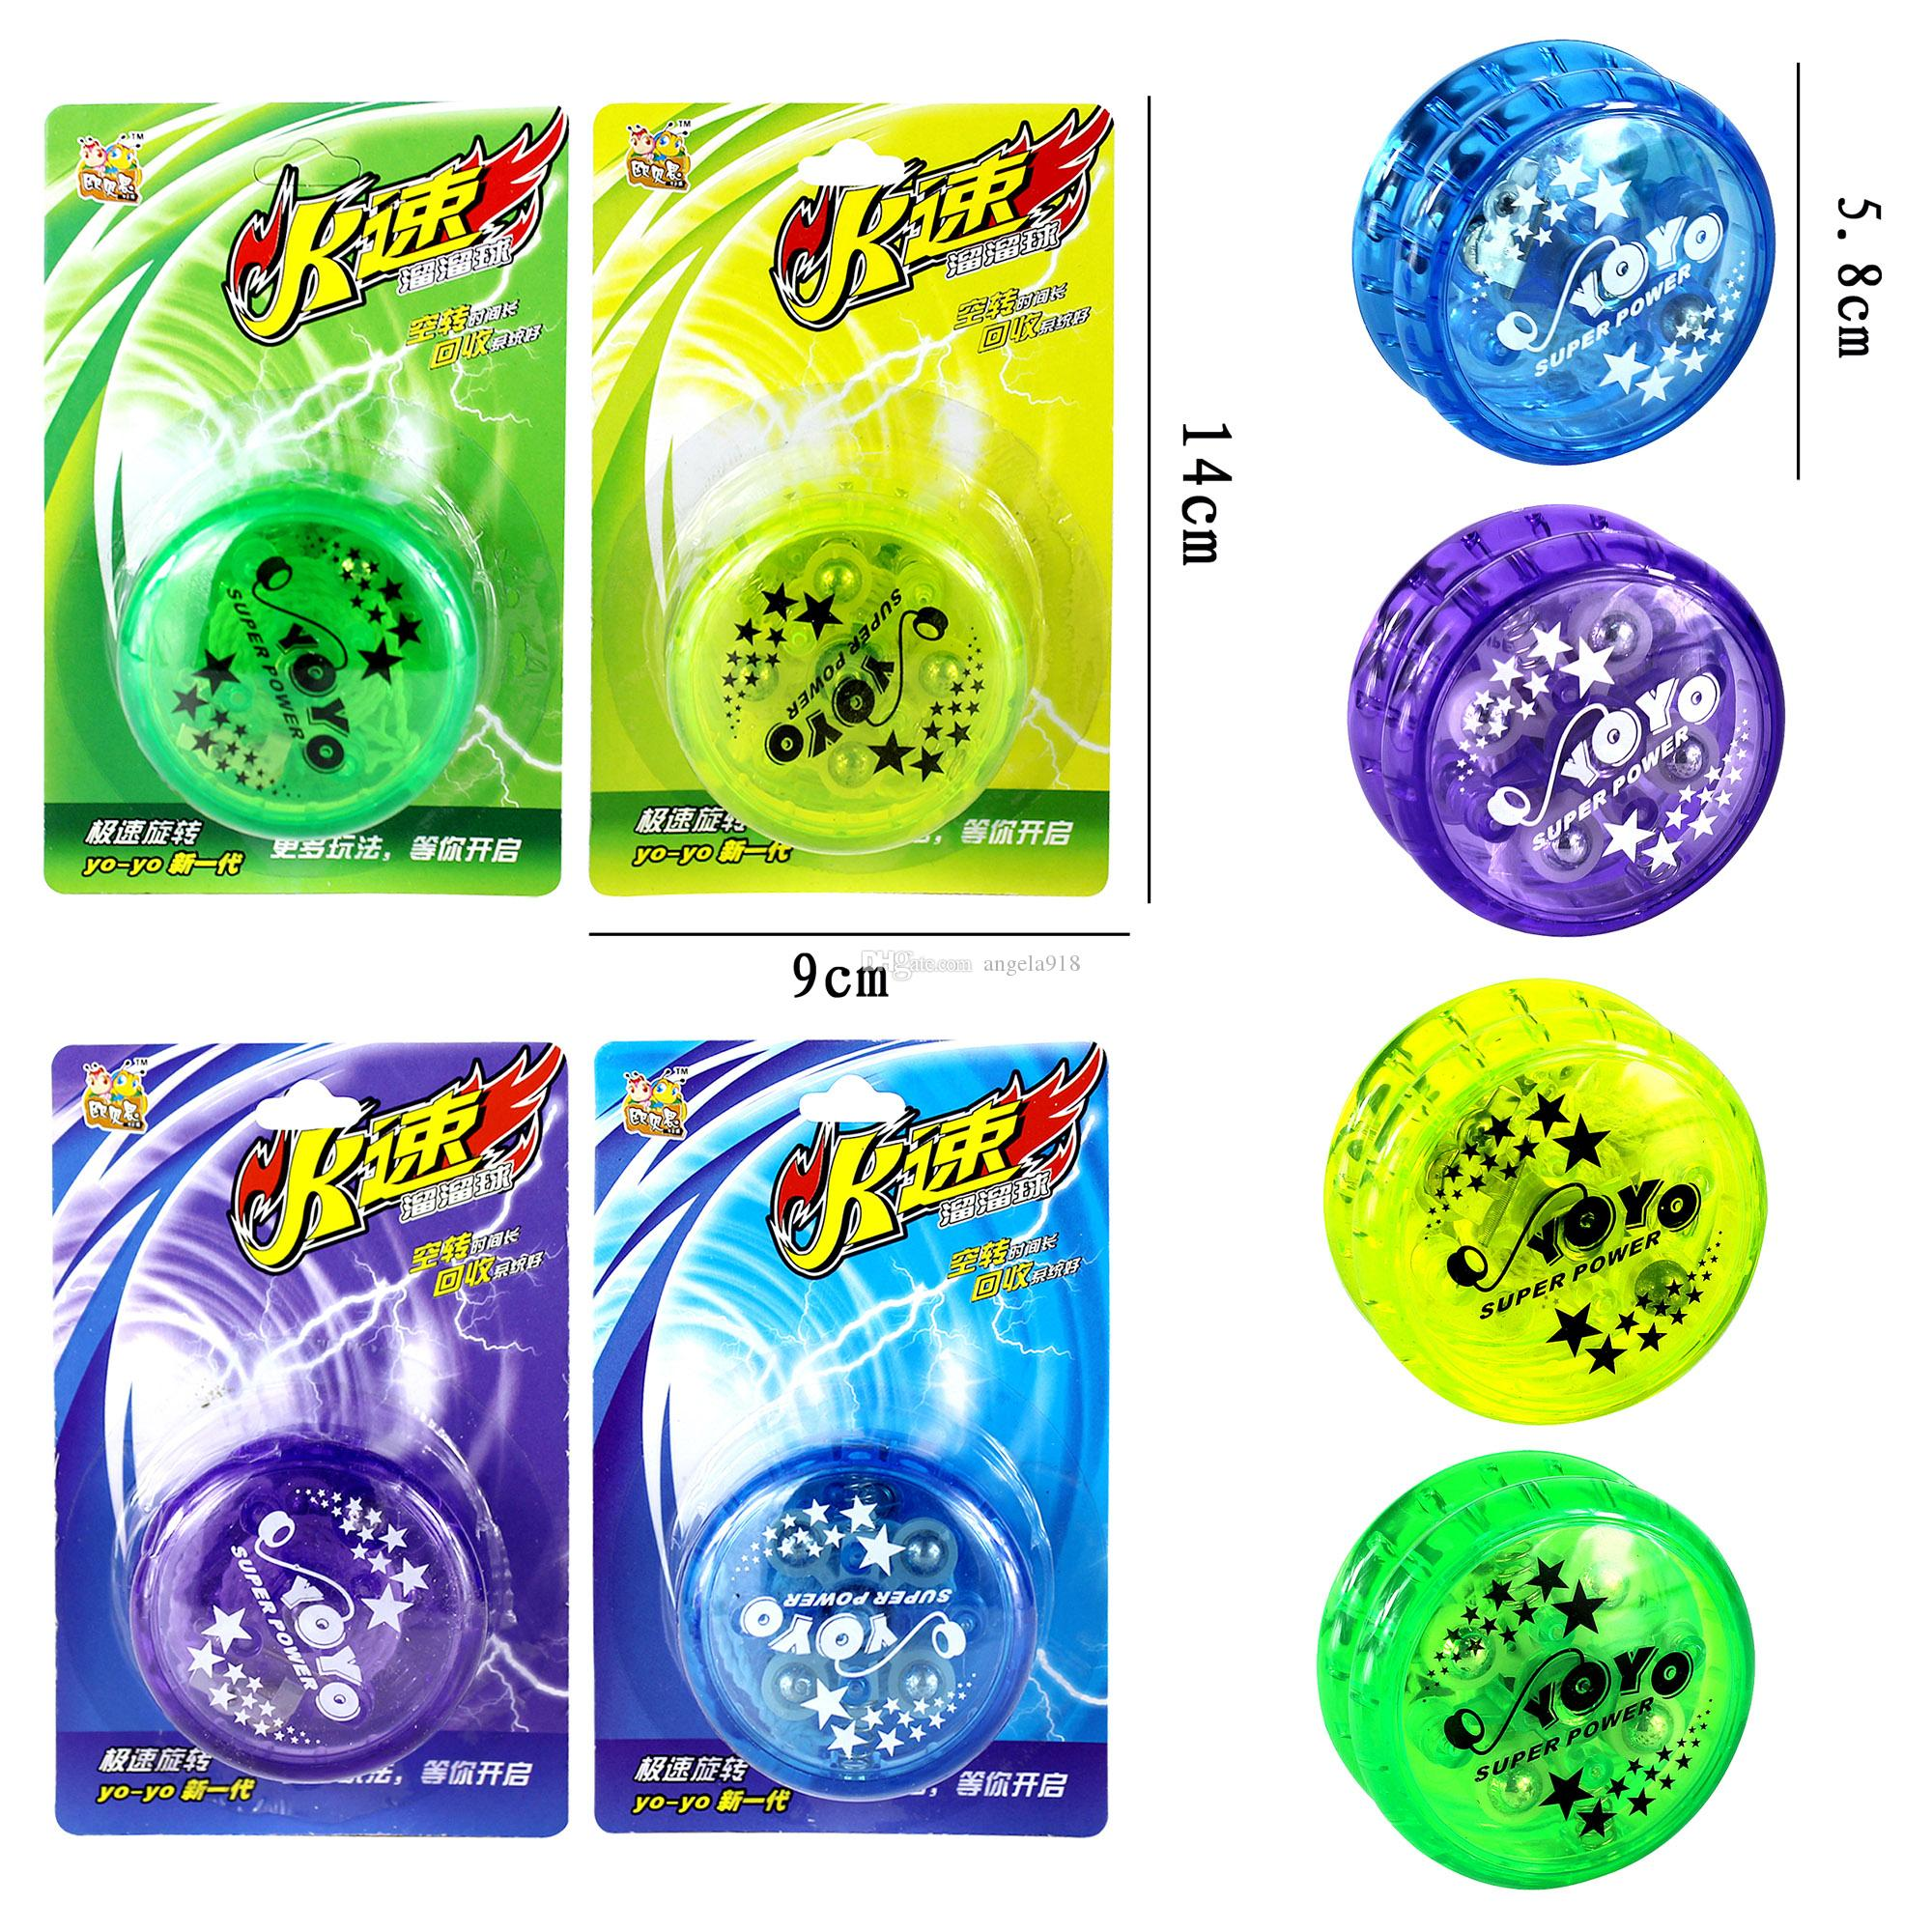 ball yoyo. wholesale yoyo ball child beginners clutch mechanism yo children toys a137 sites best duncan from angela918, $1.15| dhgate.com r